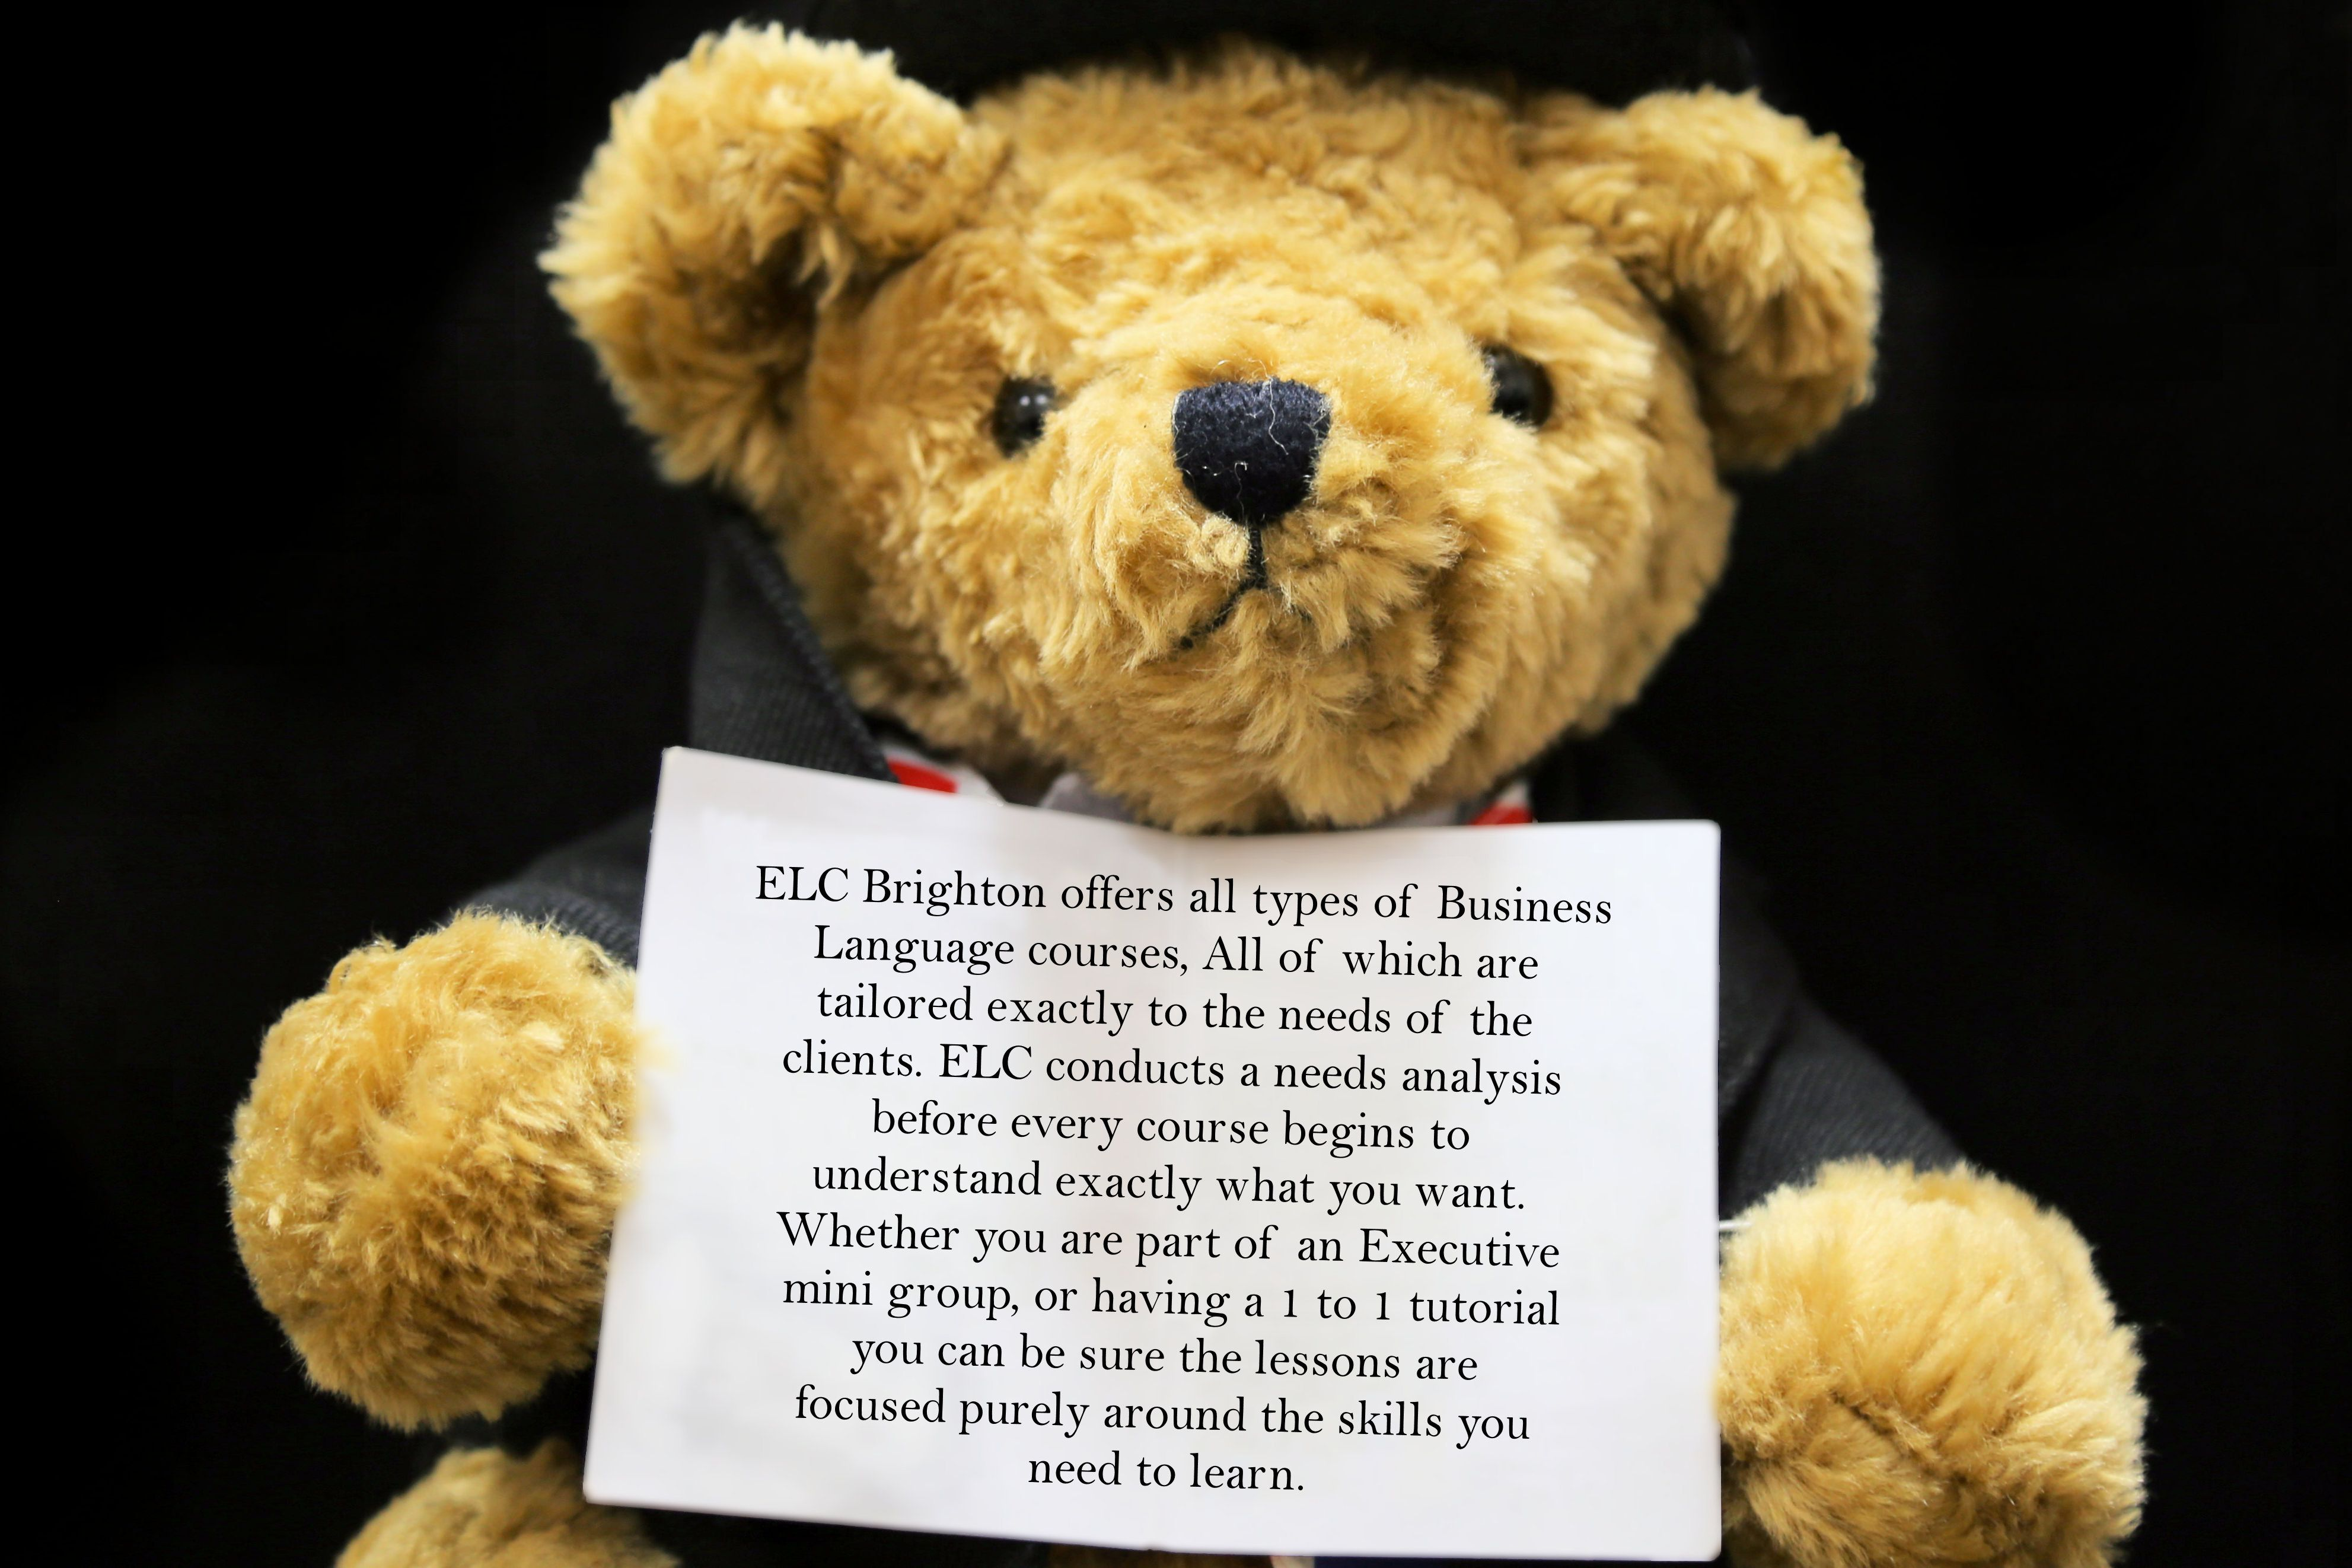 #FarringdonBear had a very interesting chat with one of our most cultured and insightful teachers Jade Blue to find out more about how our Business Language courses work here at #ELCBrighton. #farringdonsjourney @BusinessEnglishUK